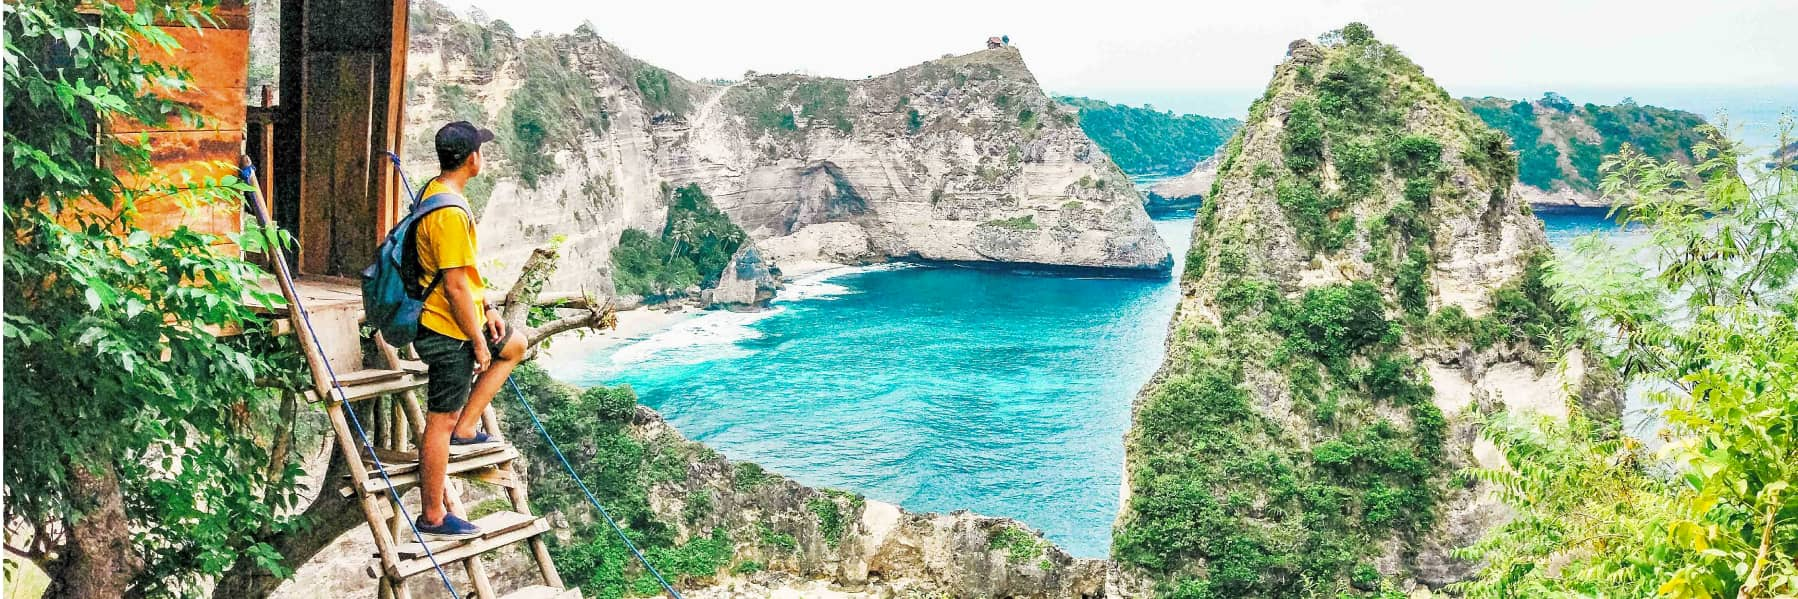 East Nusa Penida Small Group Tour: Atuh Beach & diamond beach – Full Day gallery